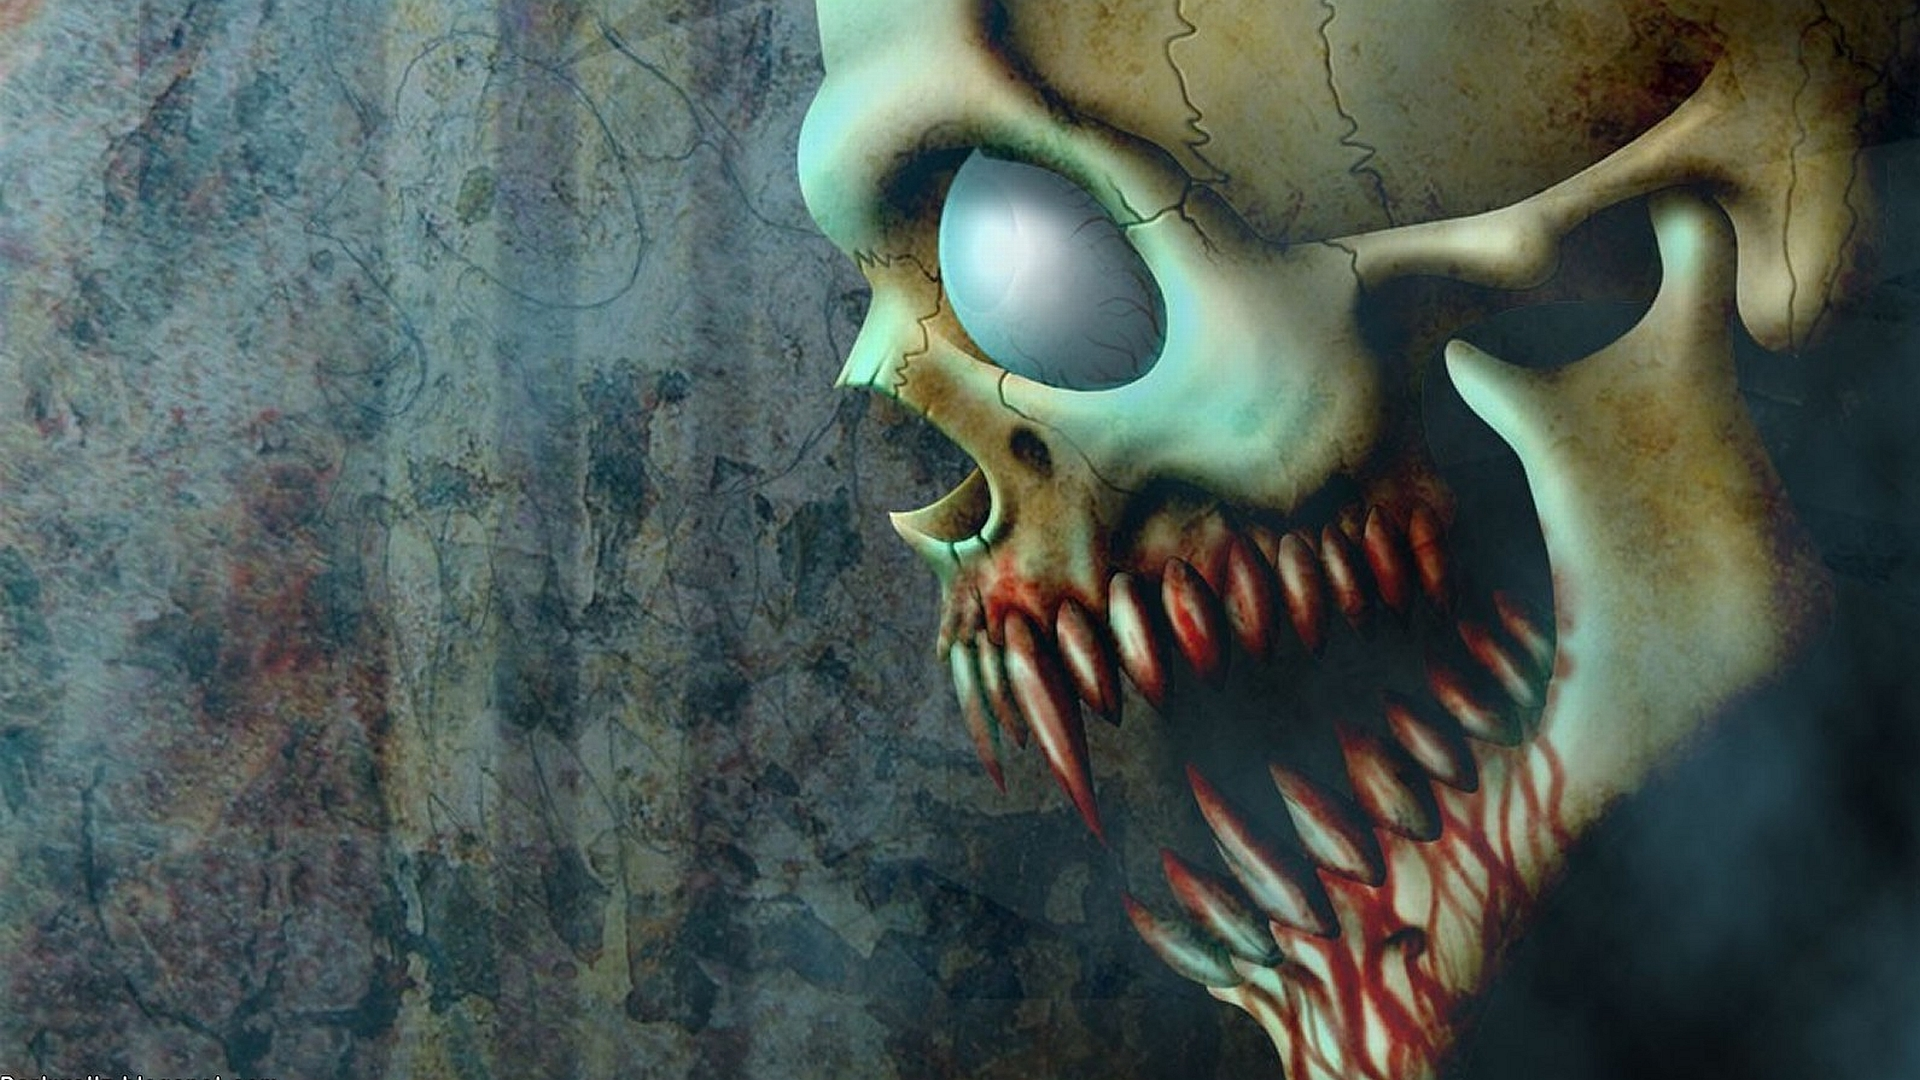 Evil Skull Wallpapers Hd Dark   skull wallpaper 1920x1080